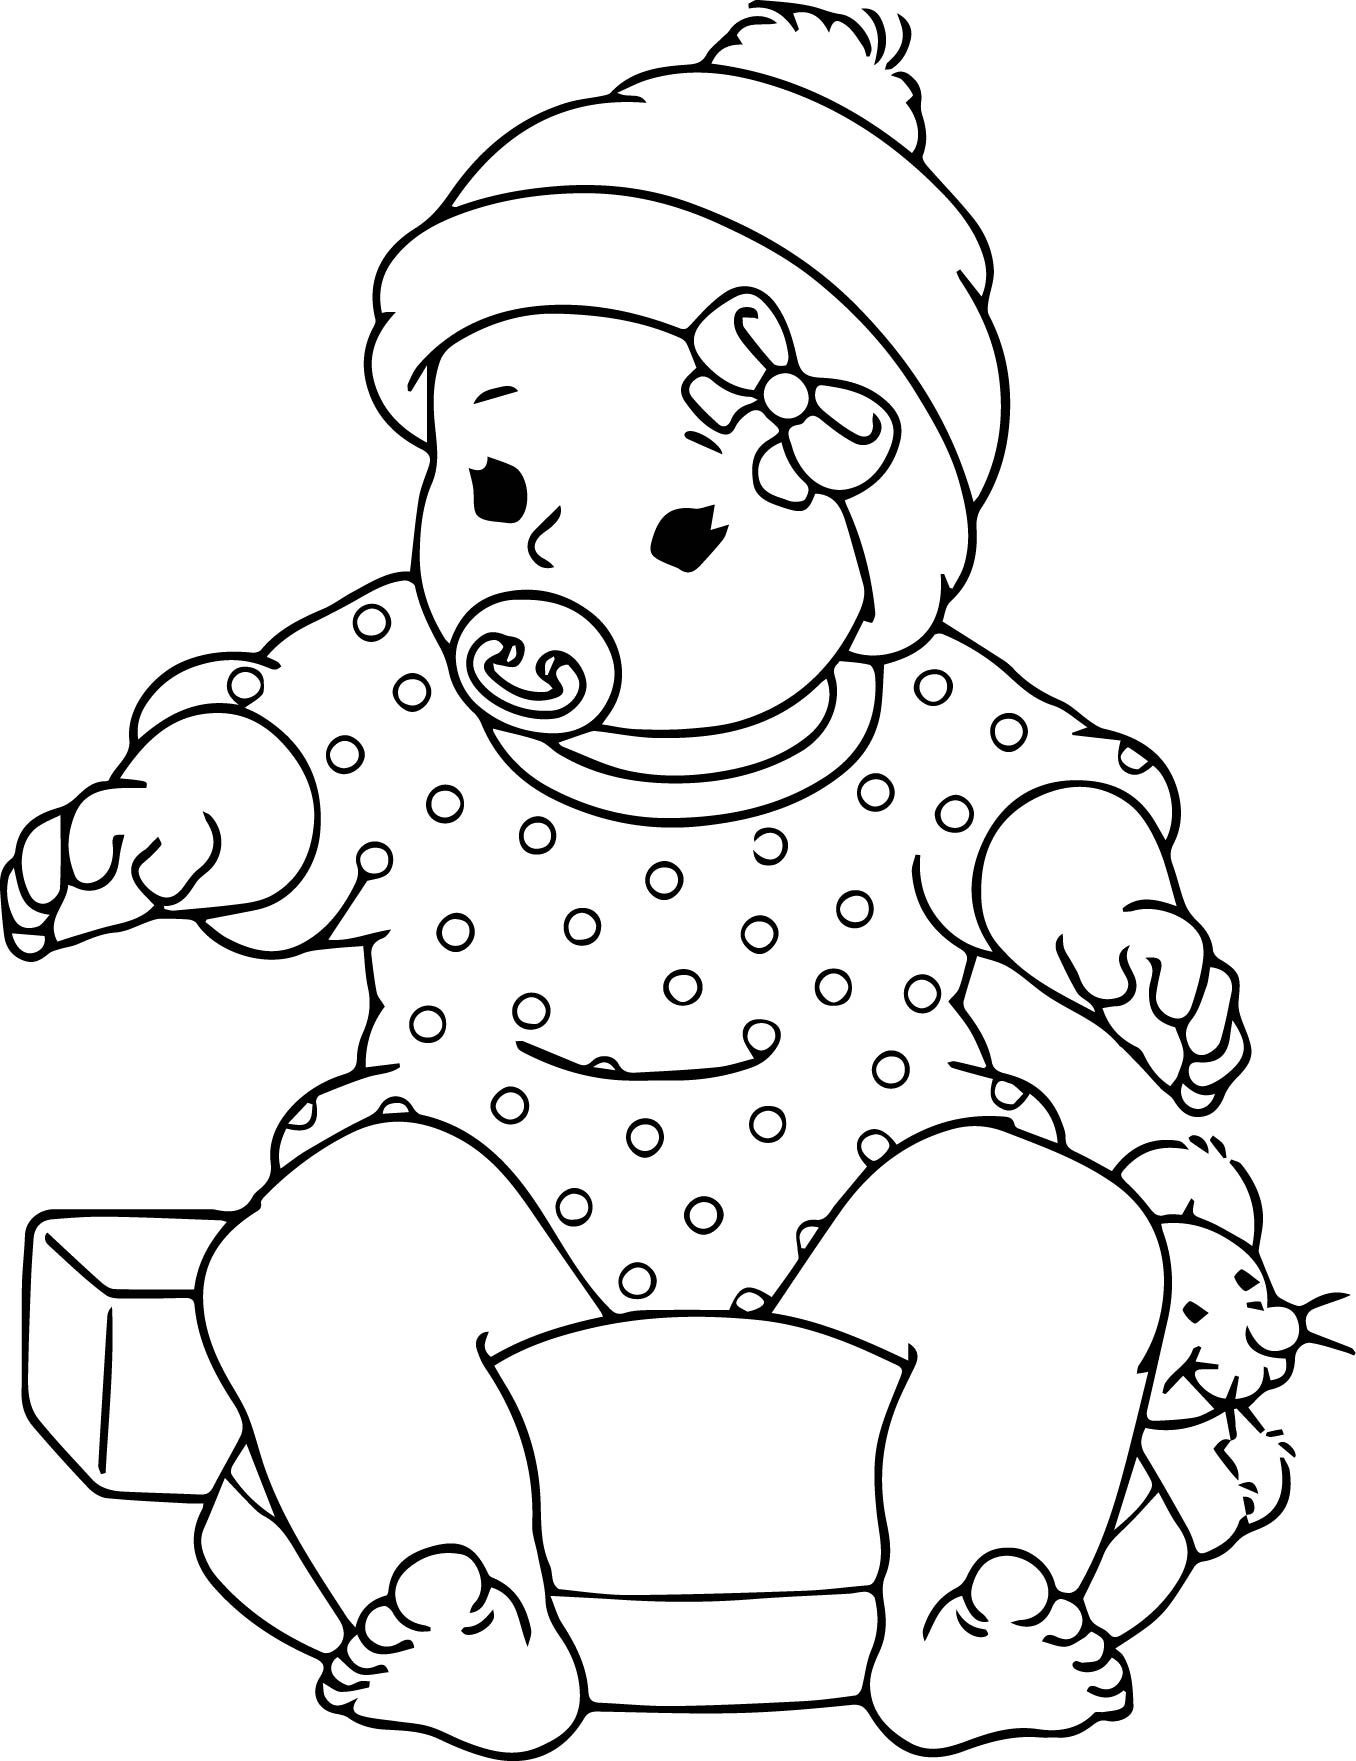 dolls colouring pages doll coloring pages getcoloringpagescom colouring dolls pages